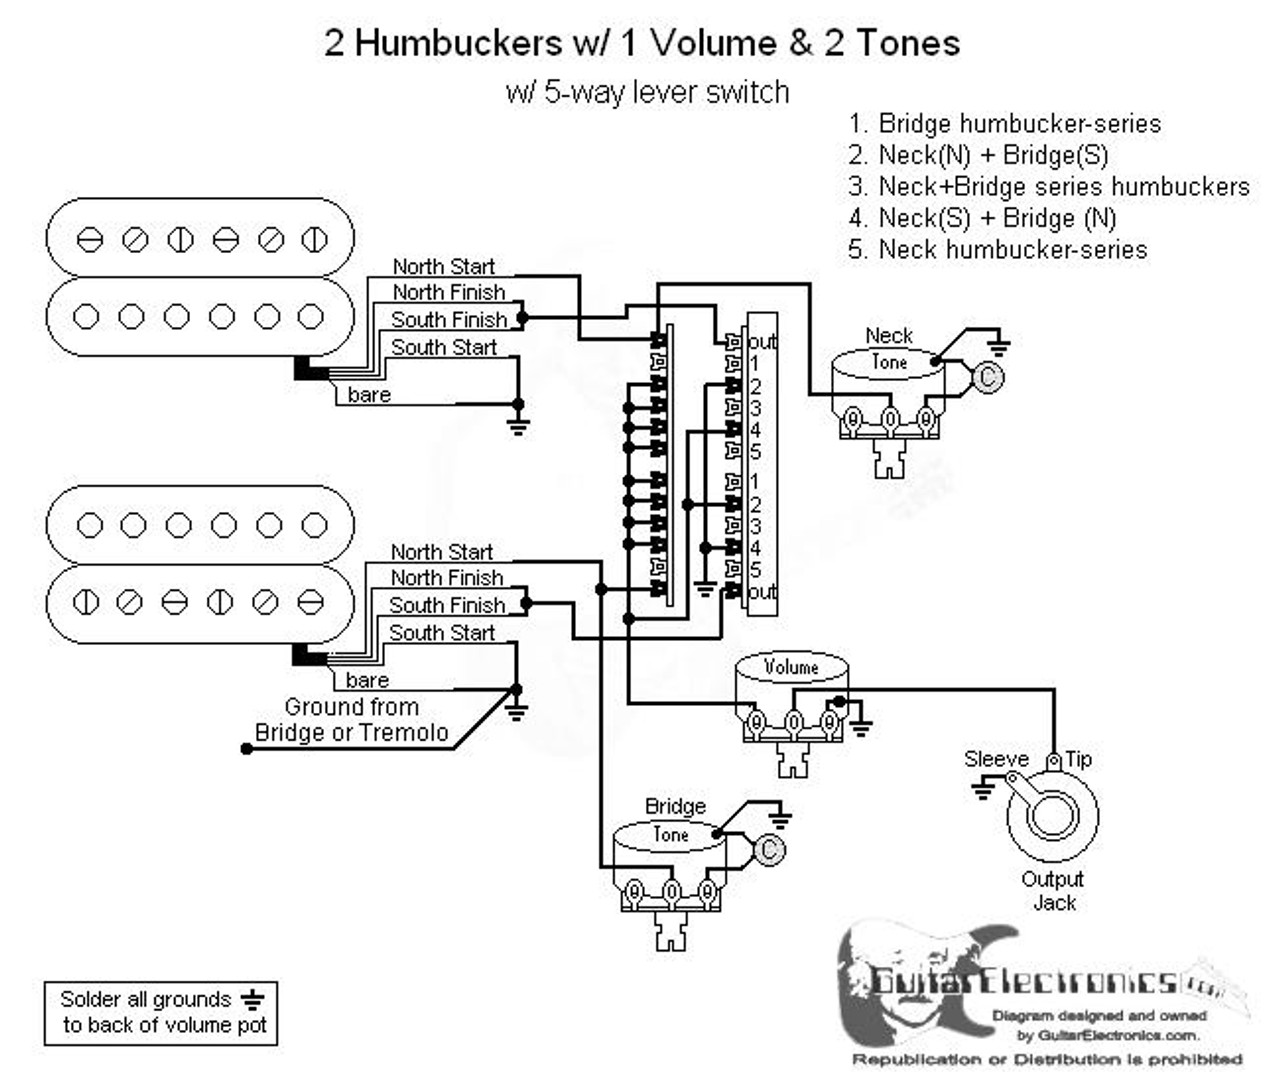 small resolution of 2 humbuckers 5 way lever switch 1 volume 2 tones 05fender strat wiring diagram 2 humbucker